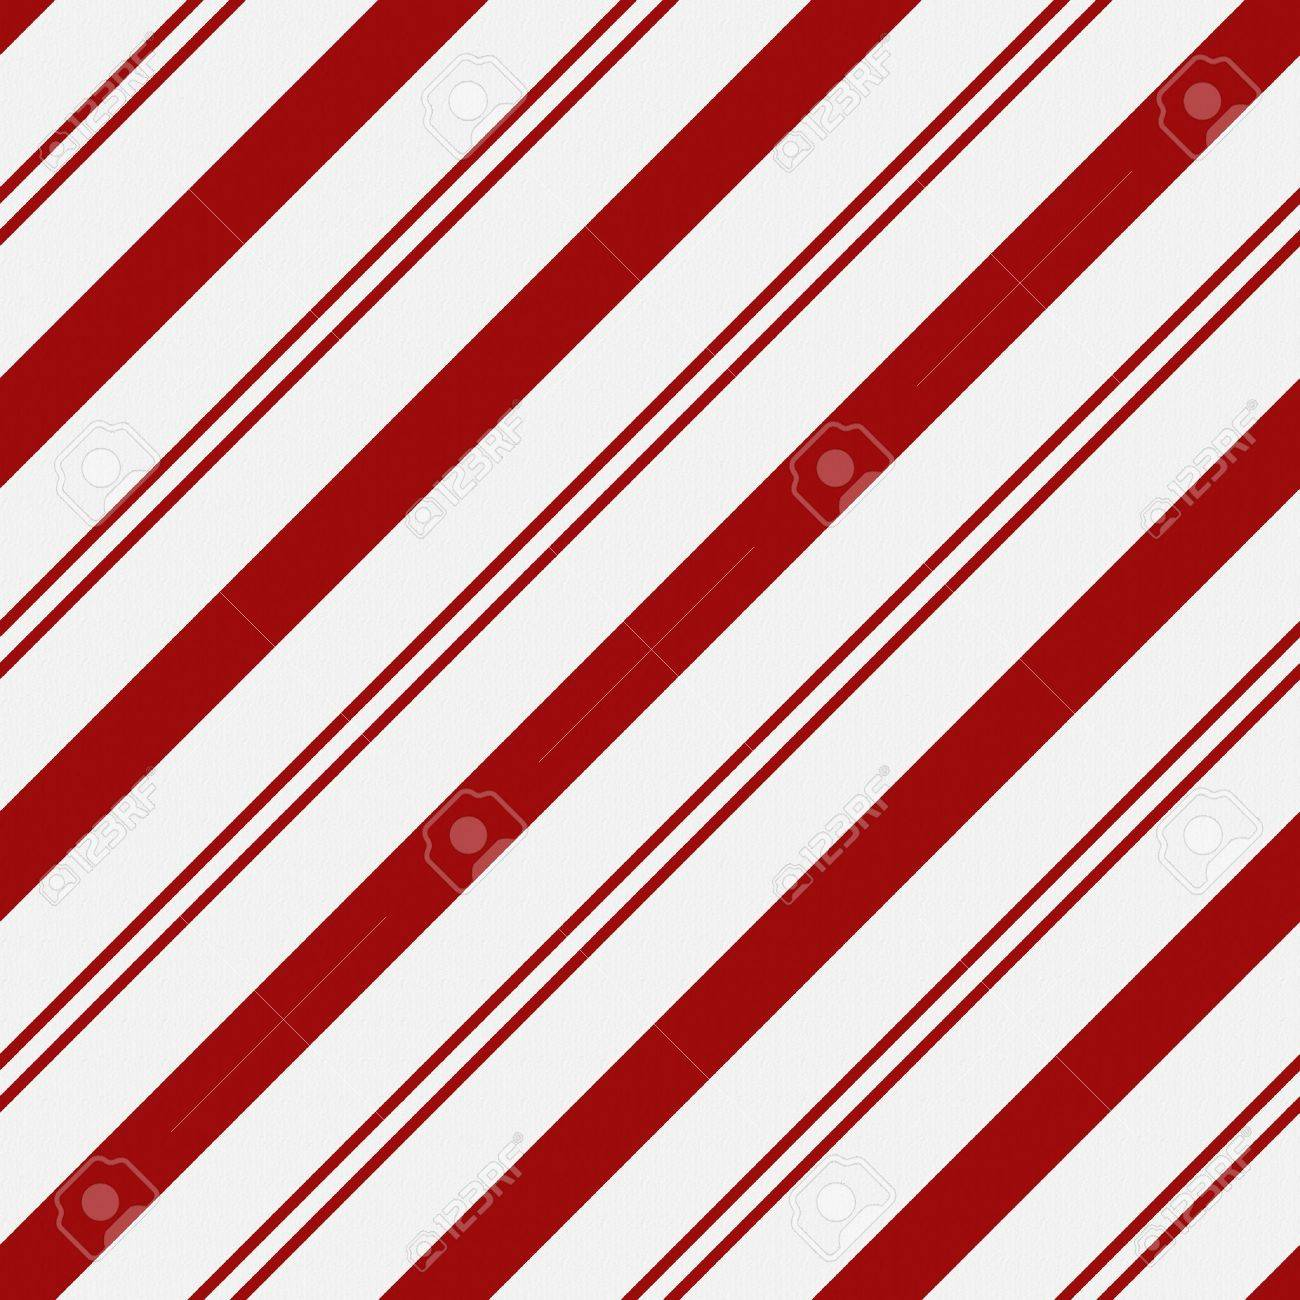 Candy Cane Backgrounds Free Candy Cane Background Red